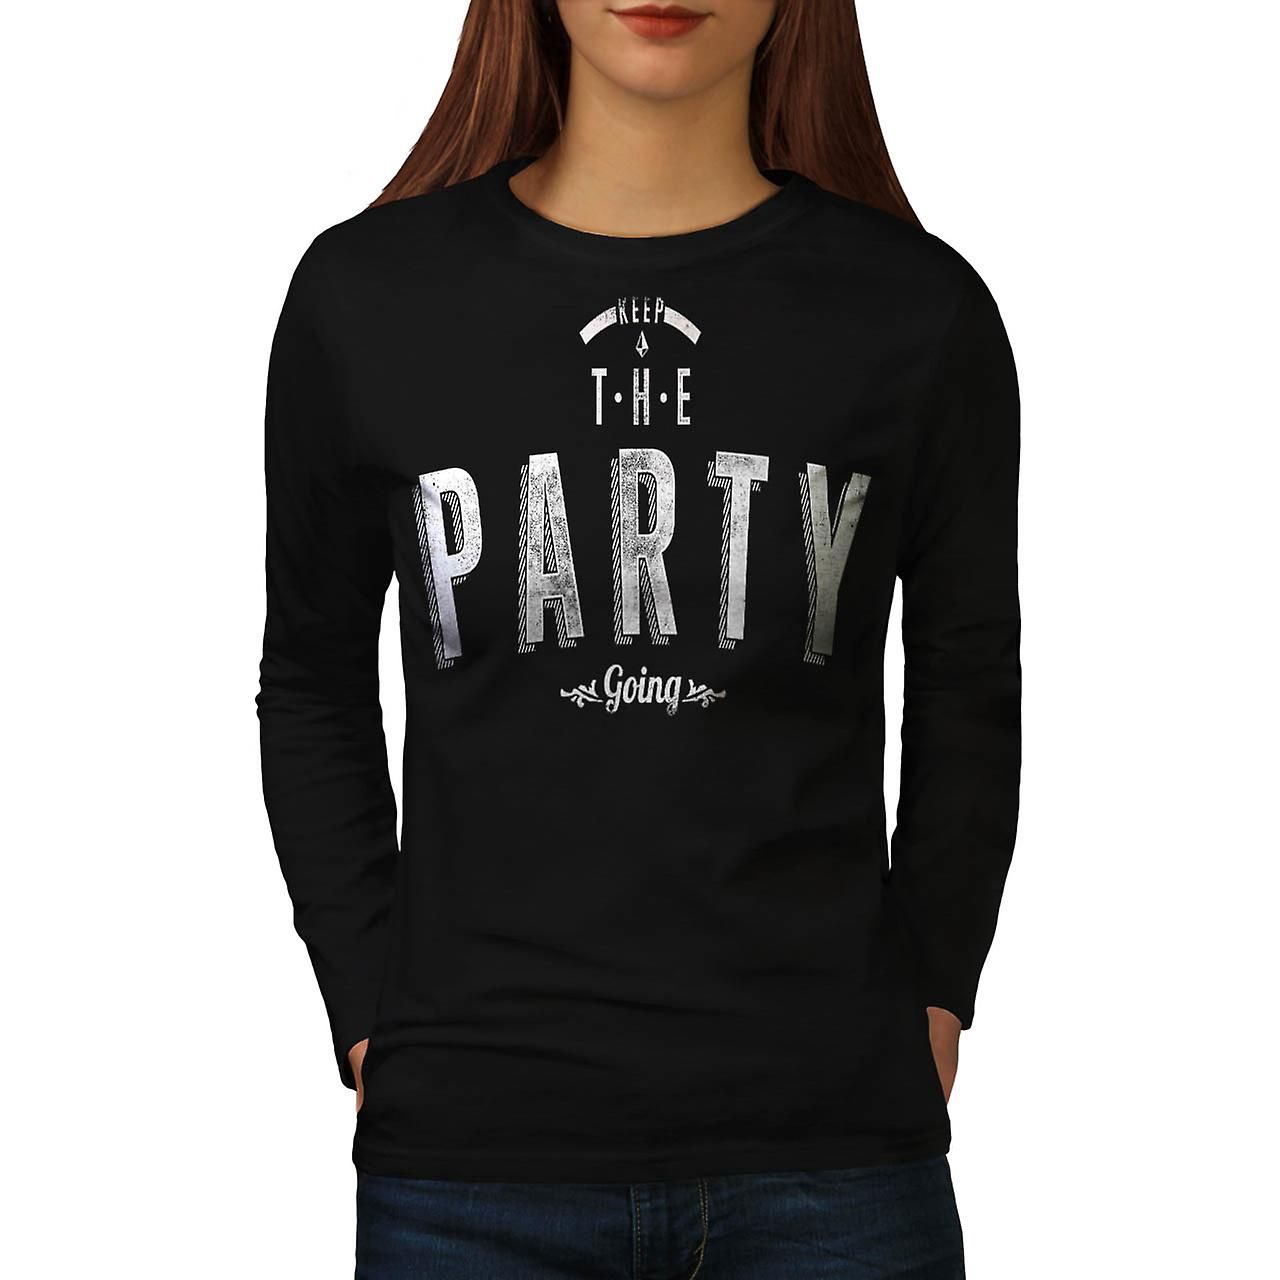 Keep The Party Going Rave Beats Women Black Long Sleeve T-shirt | Wellcoda